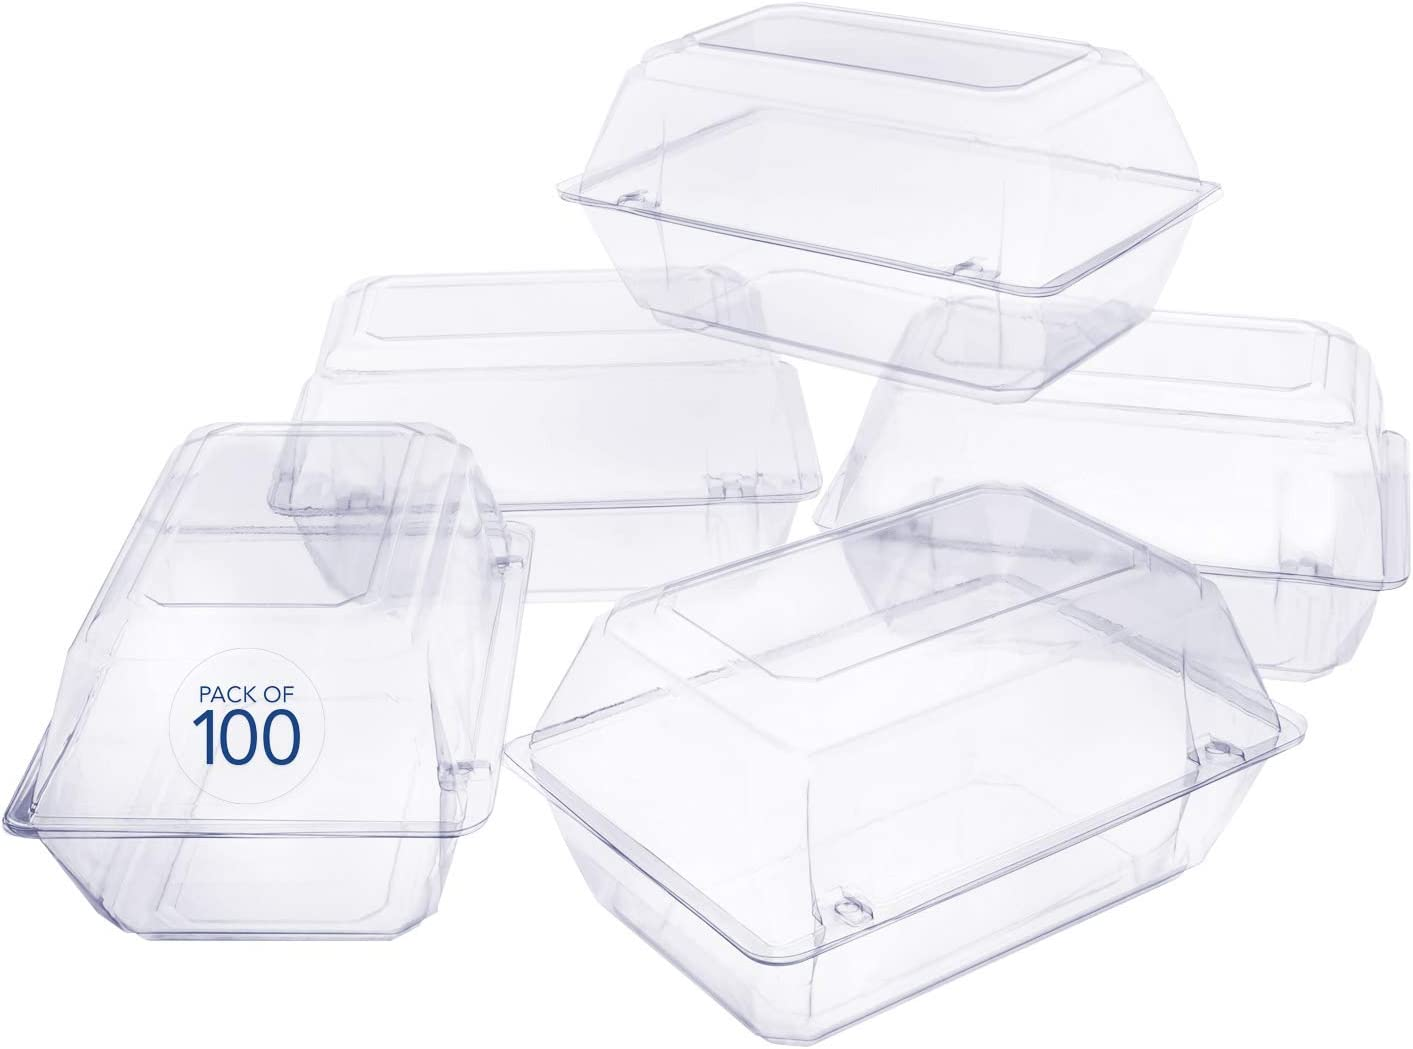 100 Pack Clear Plastic Flower Box for Corsage, Boutonniere, Rose, Orchid Prom Wedding Craft Container 9x6x5